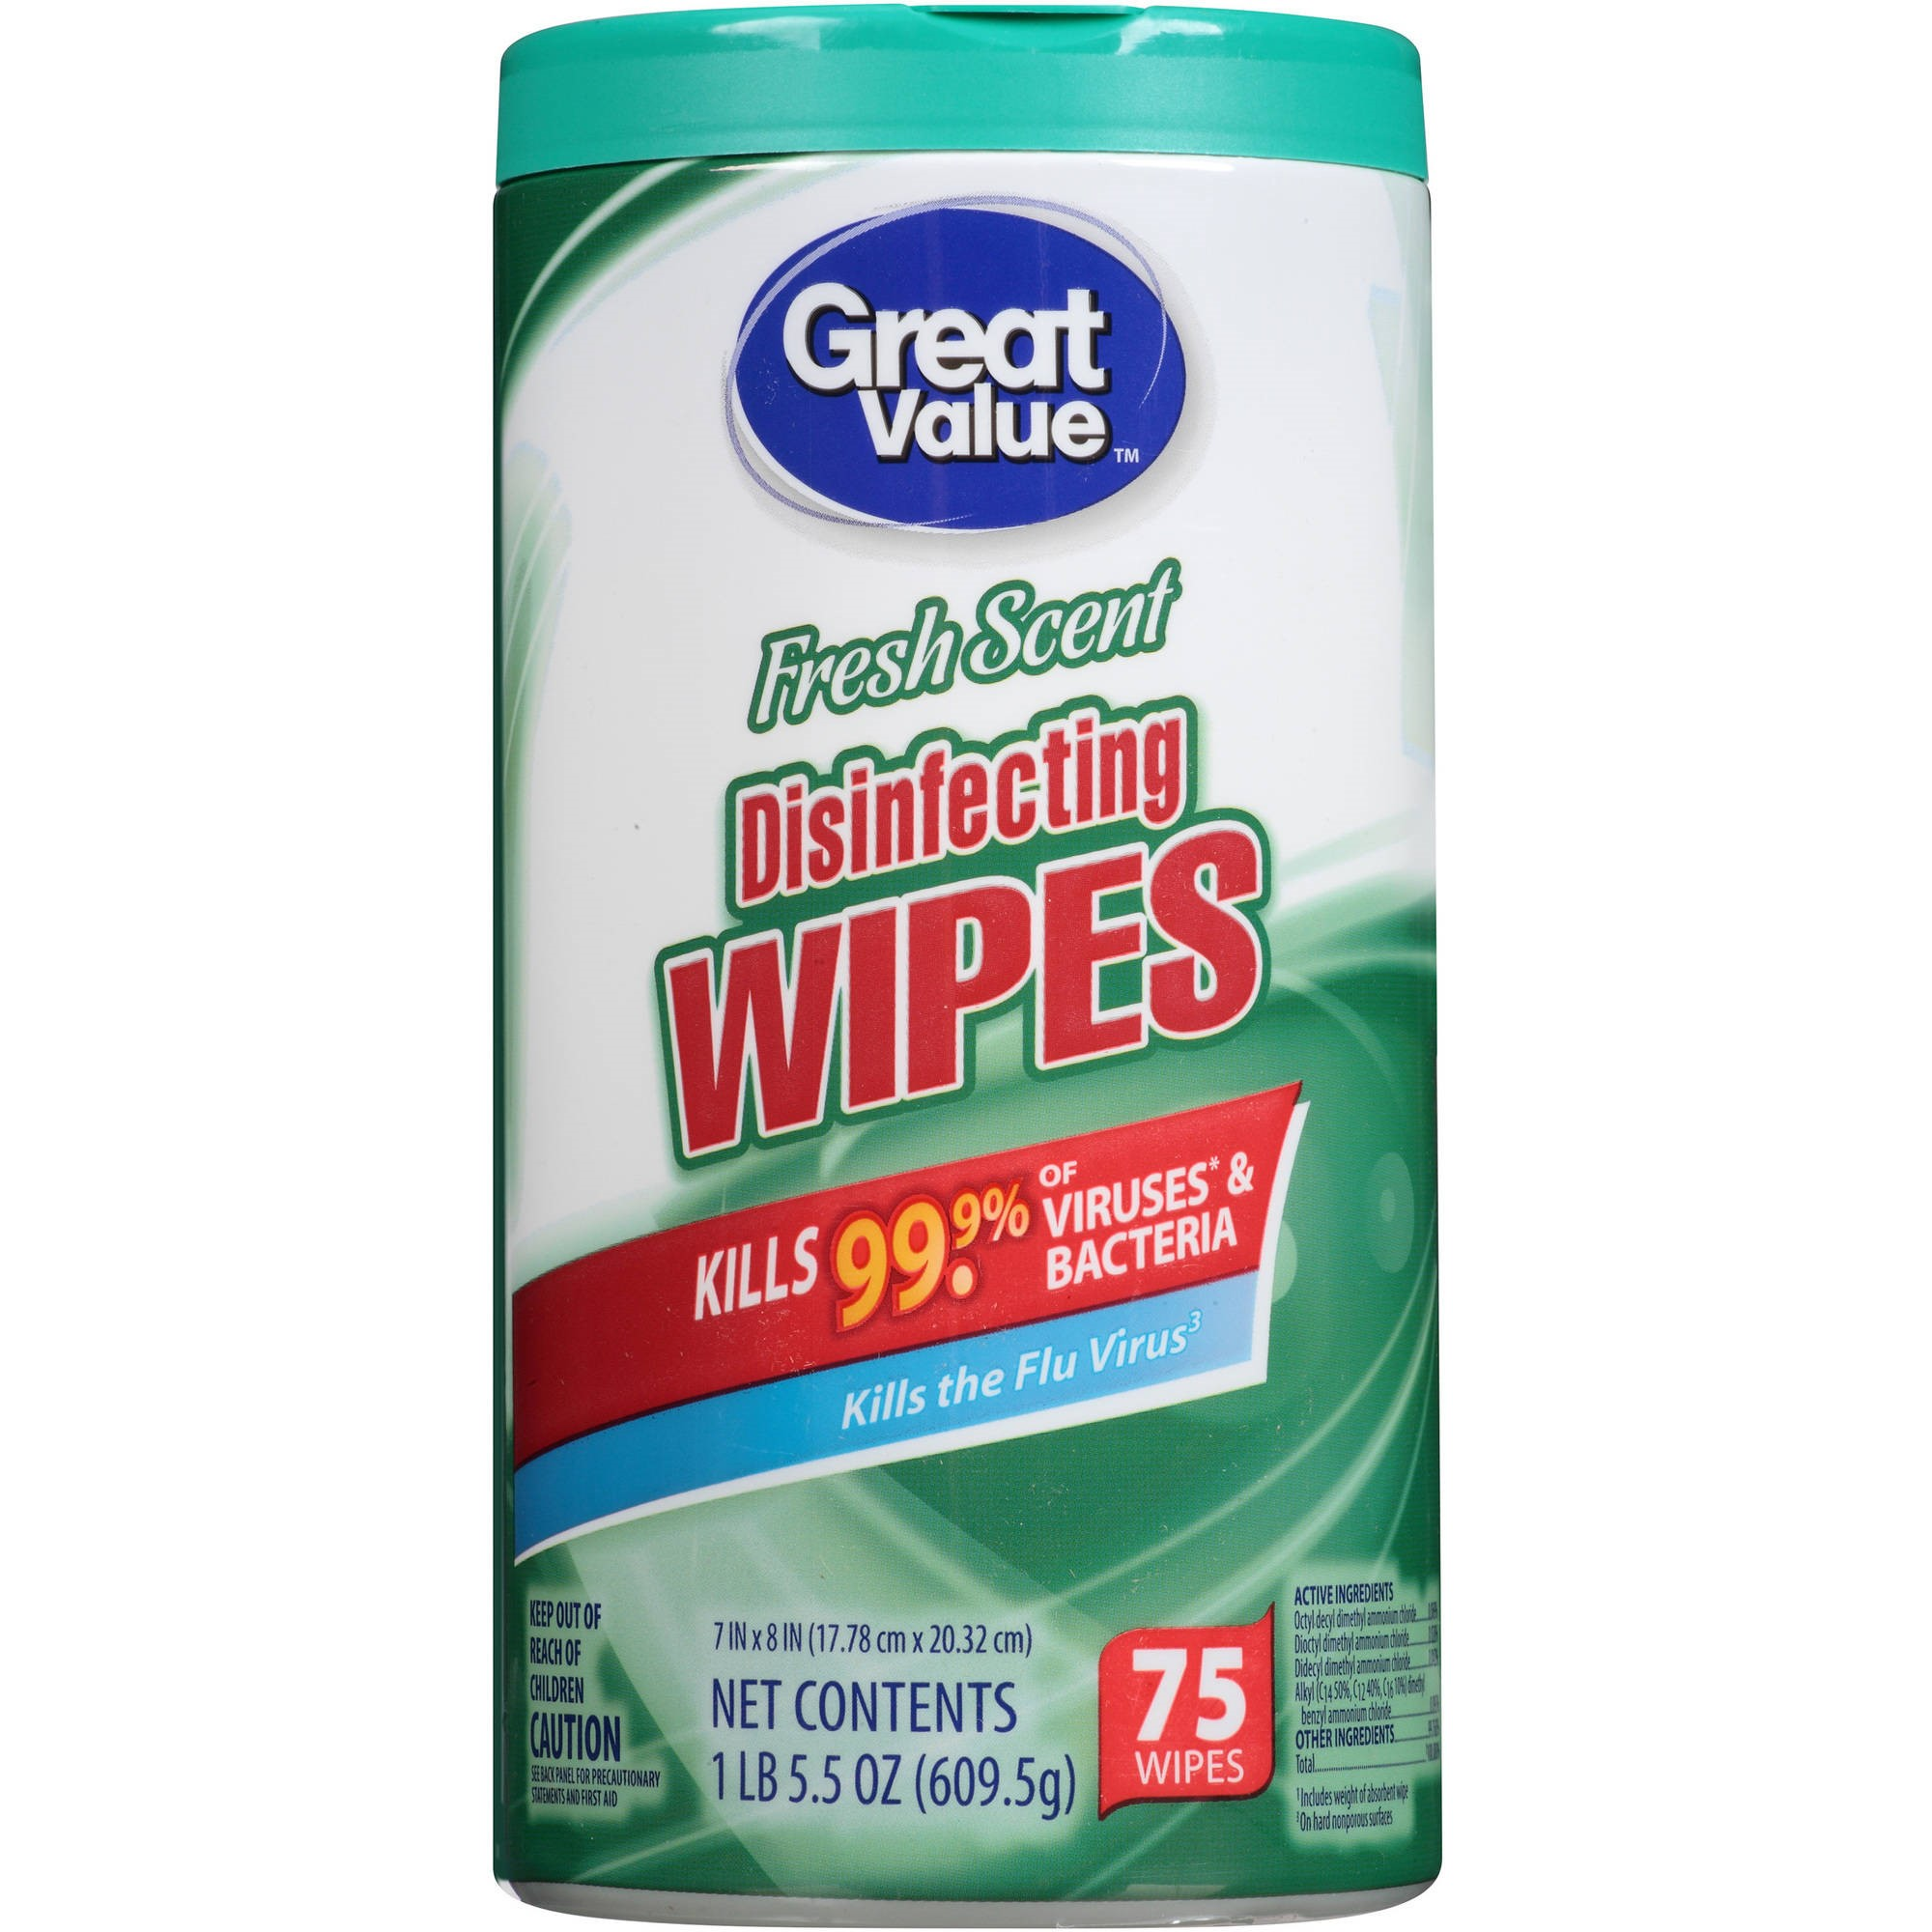 Great Value Disinfecting Wipes, Fresh, 75 Wipes